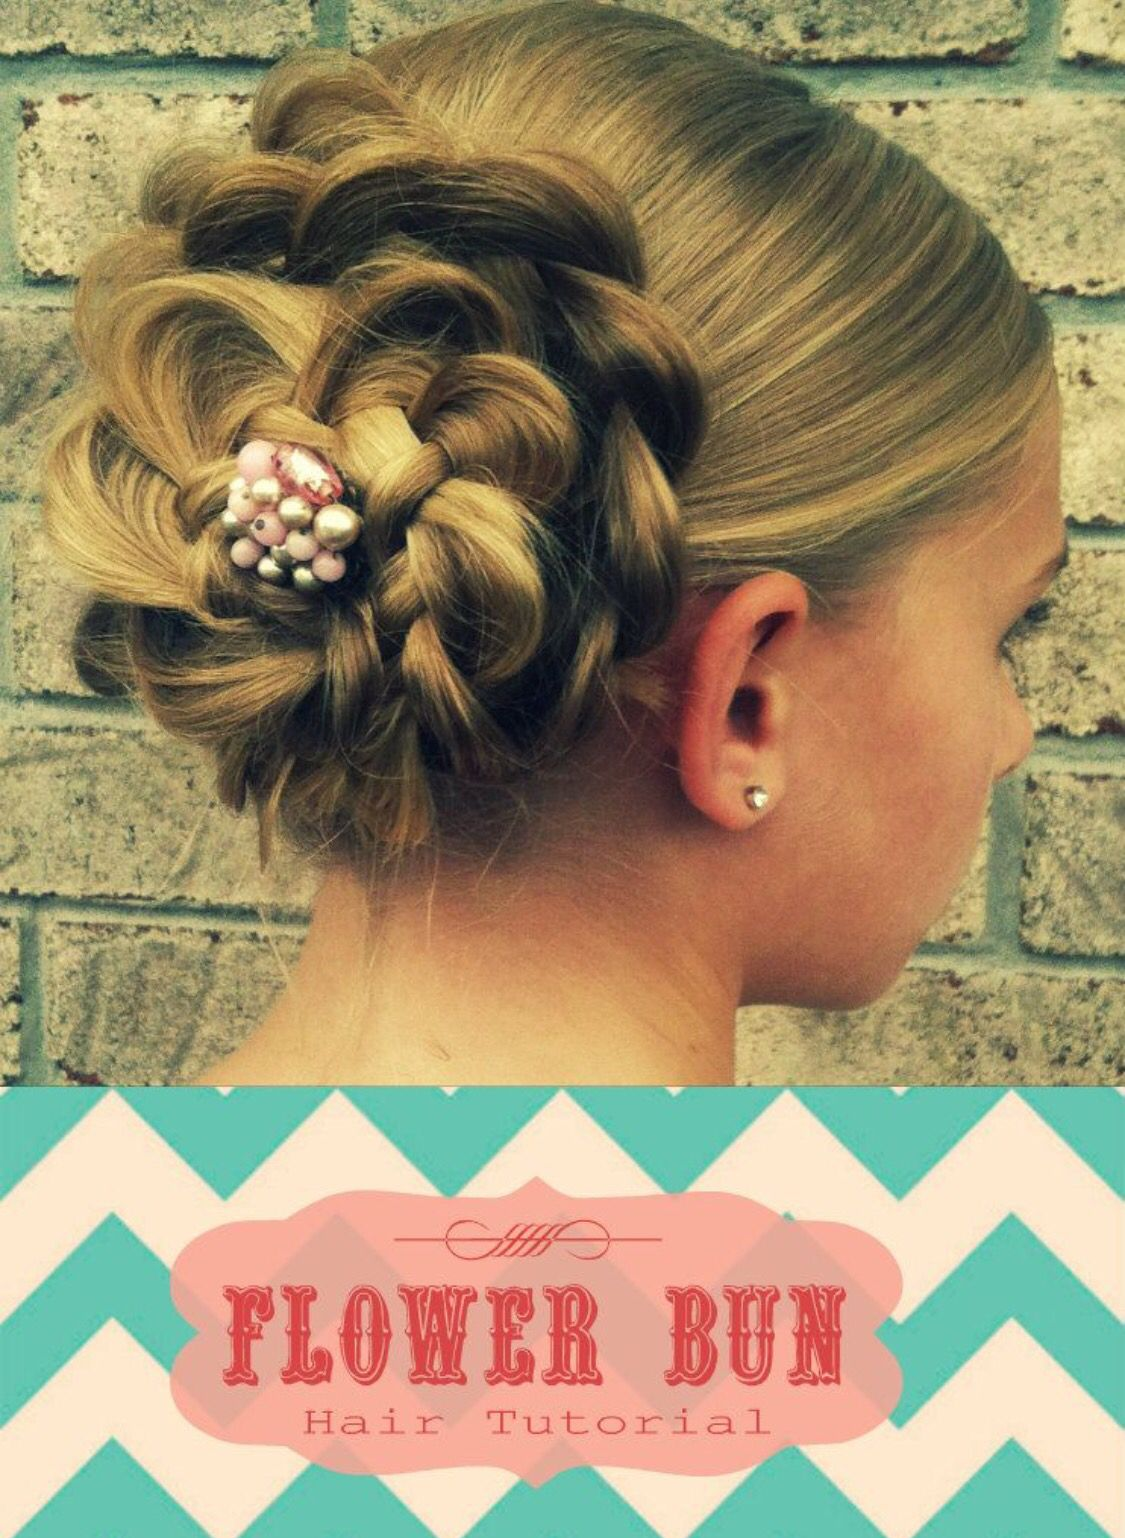 exciting new intricate braid updo hairstyles dancetumbling